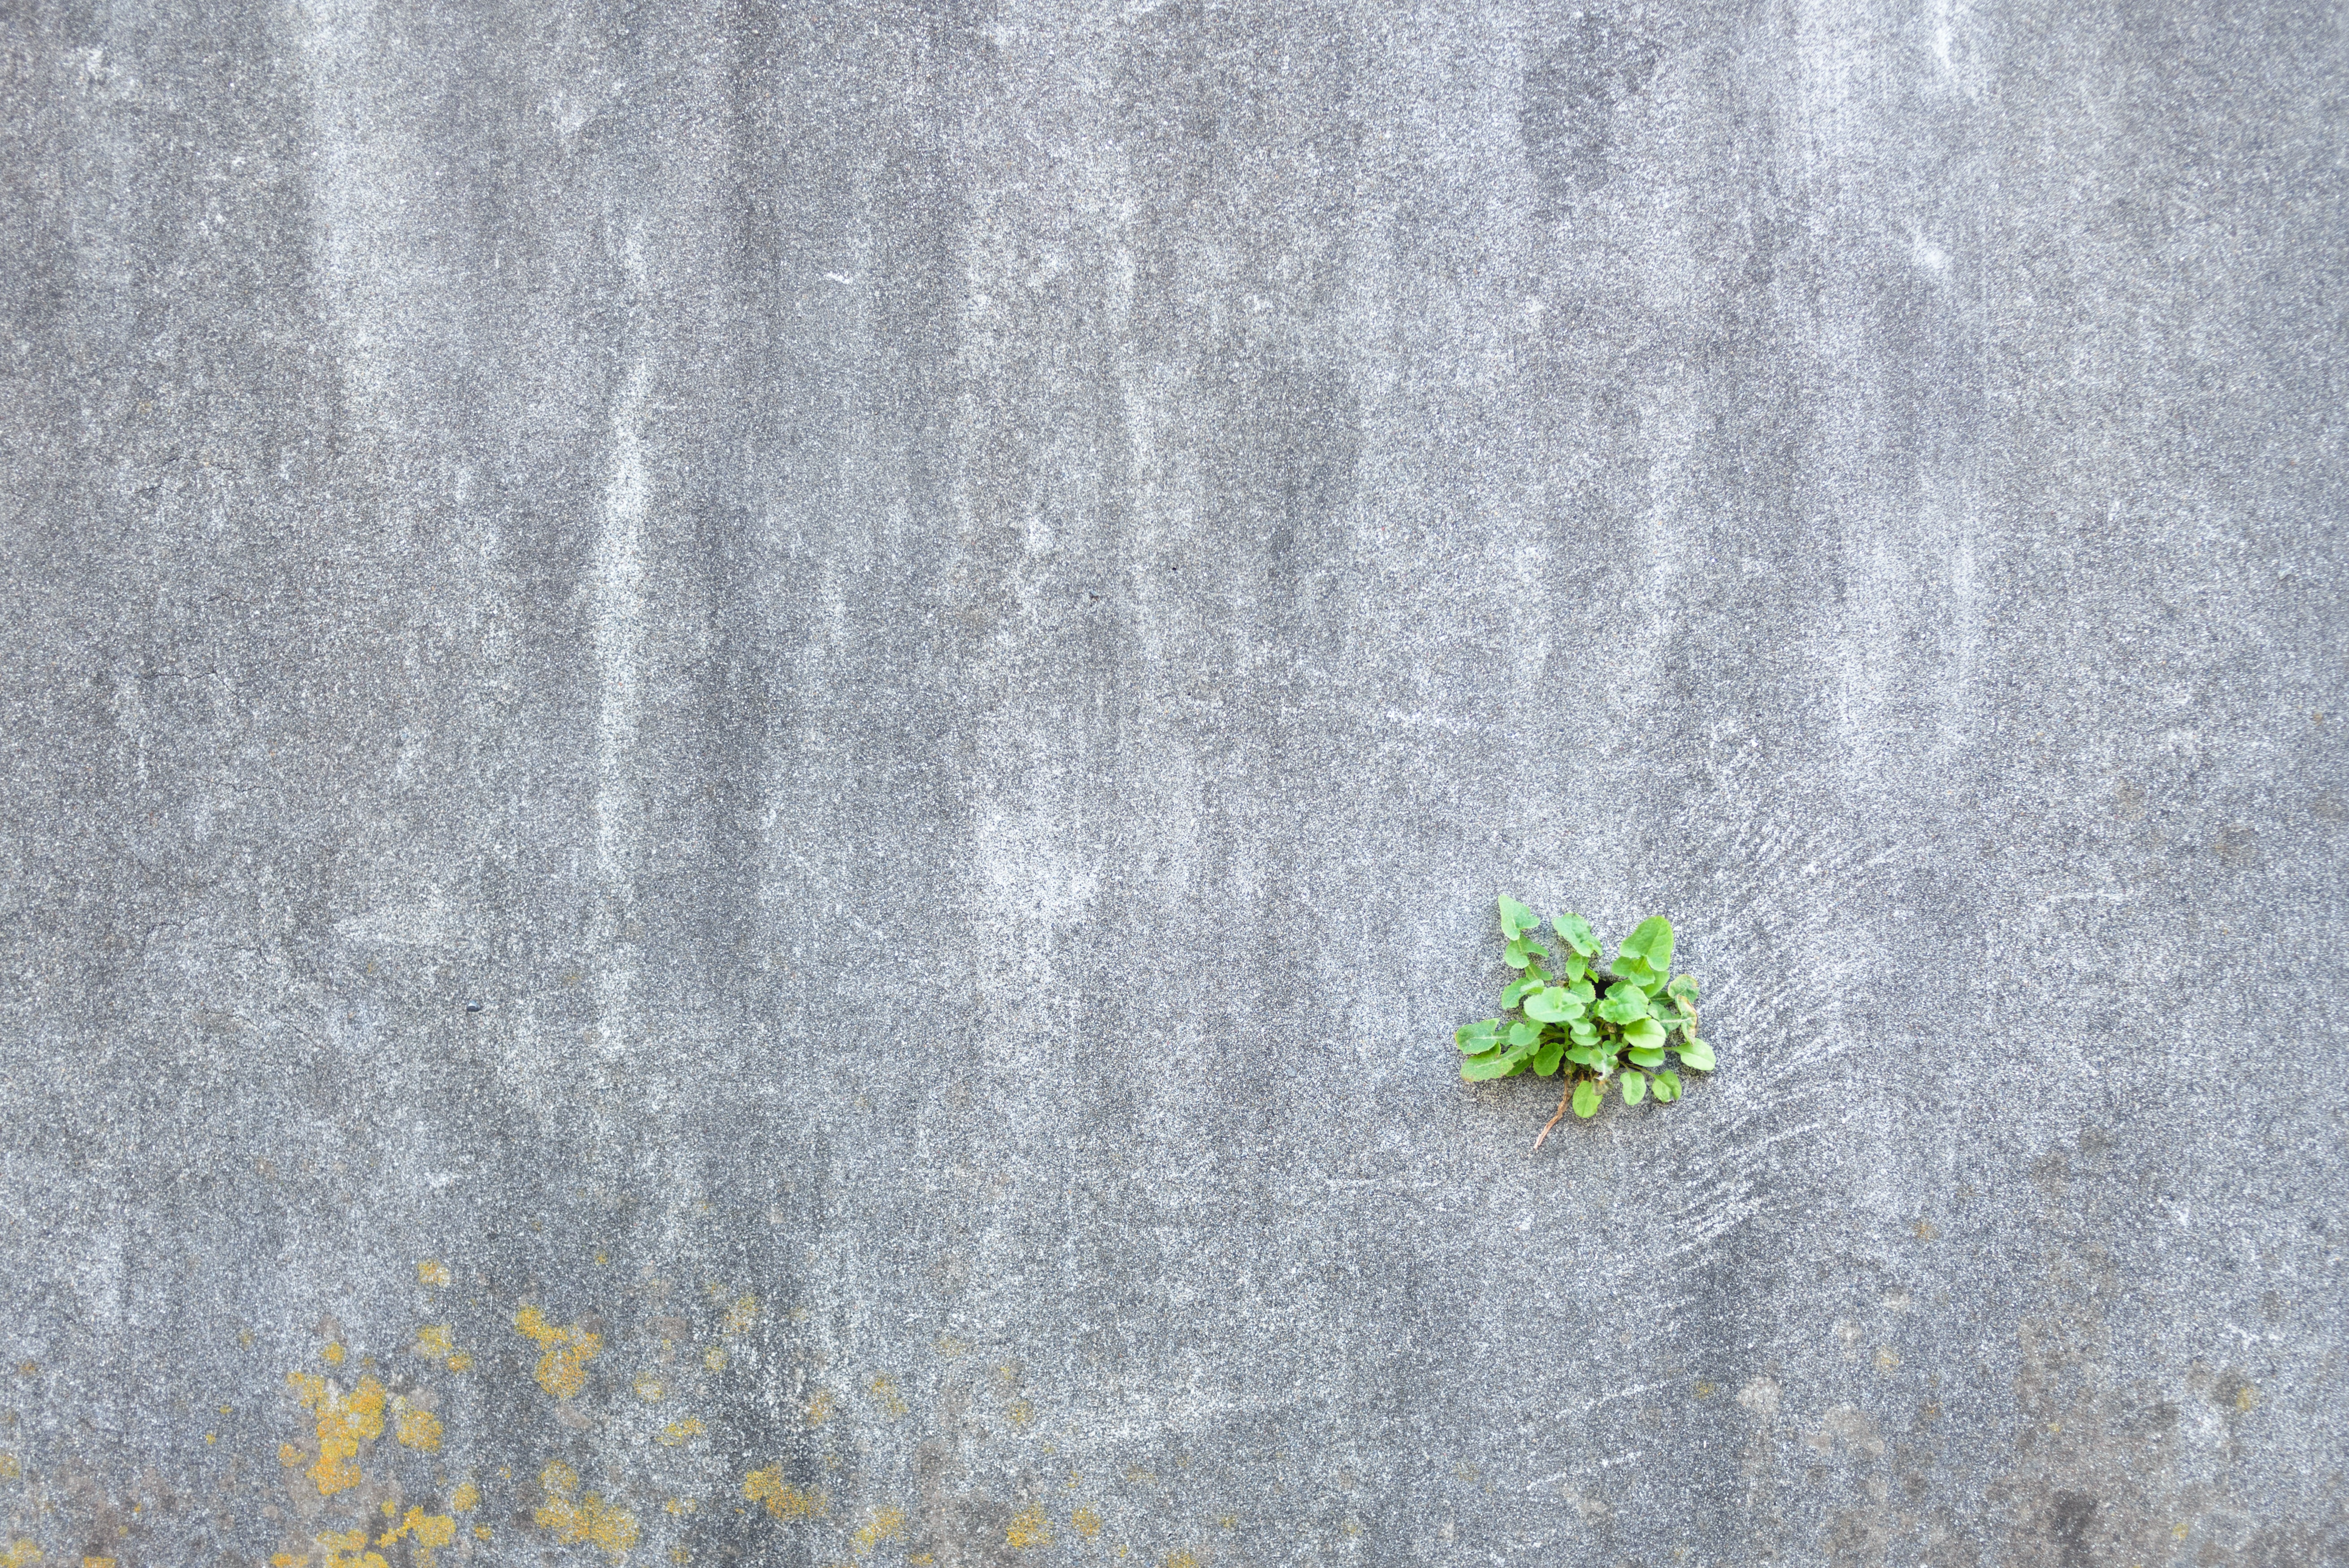 green leaves on gray concrete floor